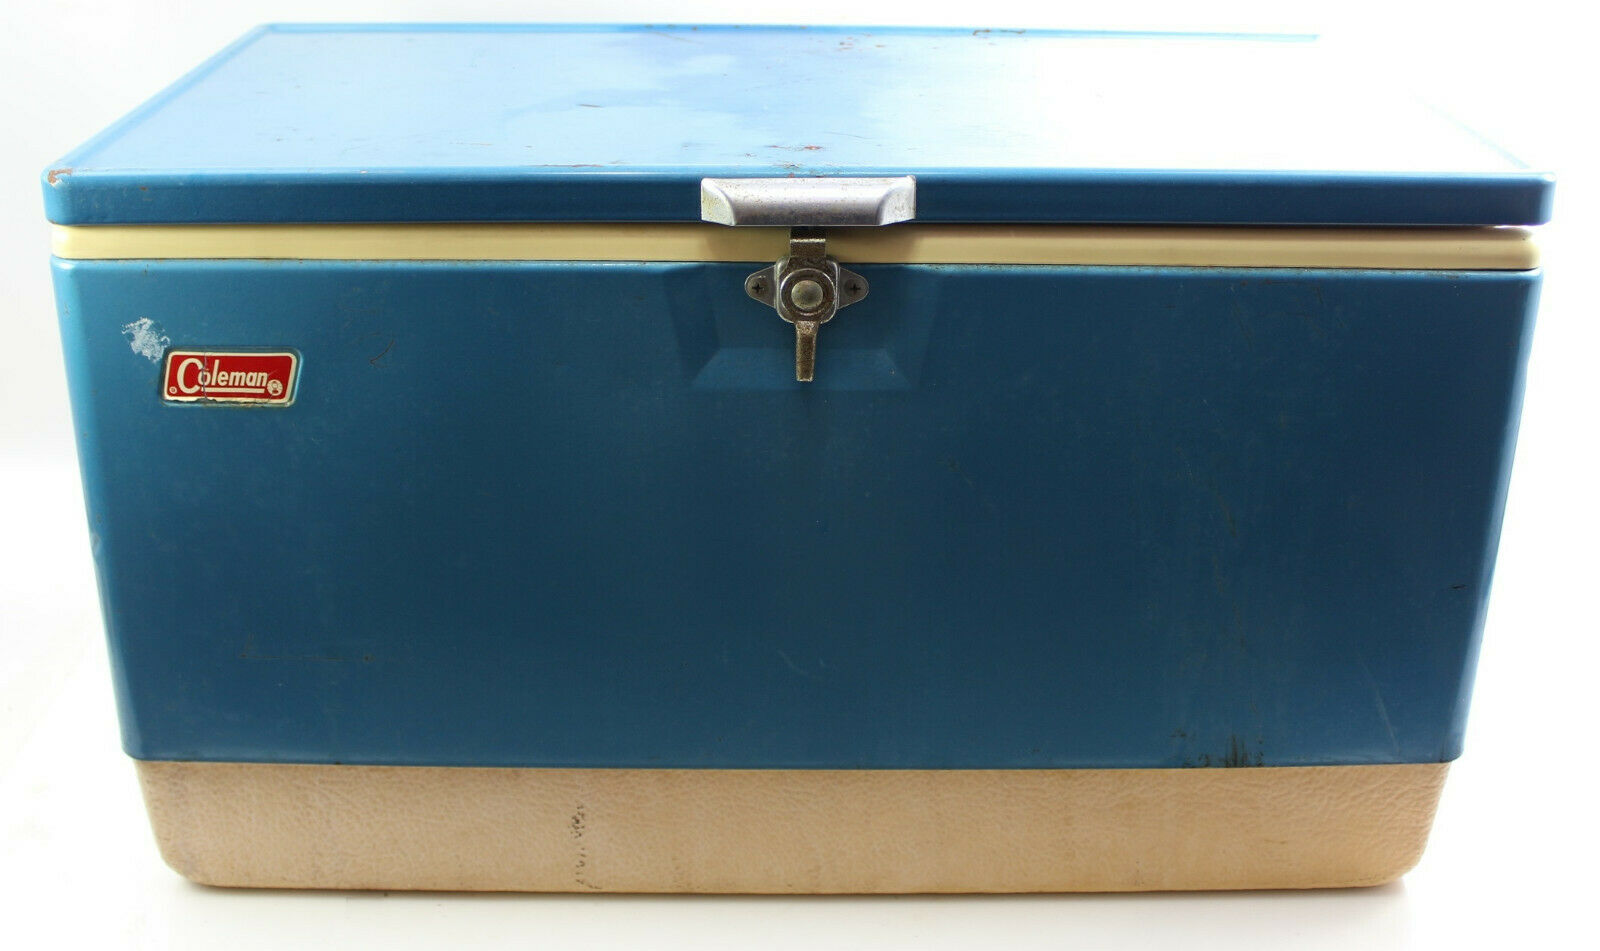 Vintage 1970s Coleman XL Metal Cooler  Ice Chest Box bluee w  Bottle Opener 28   not to be missed!